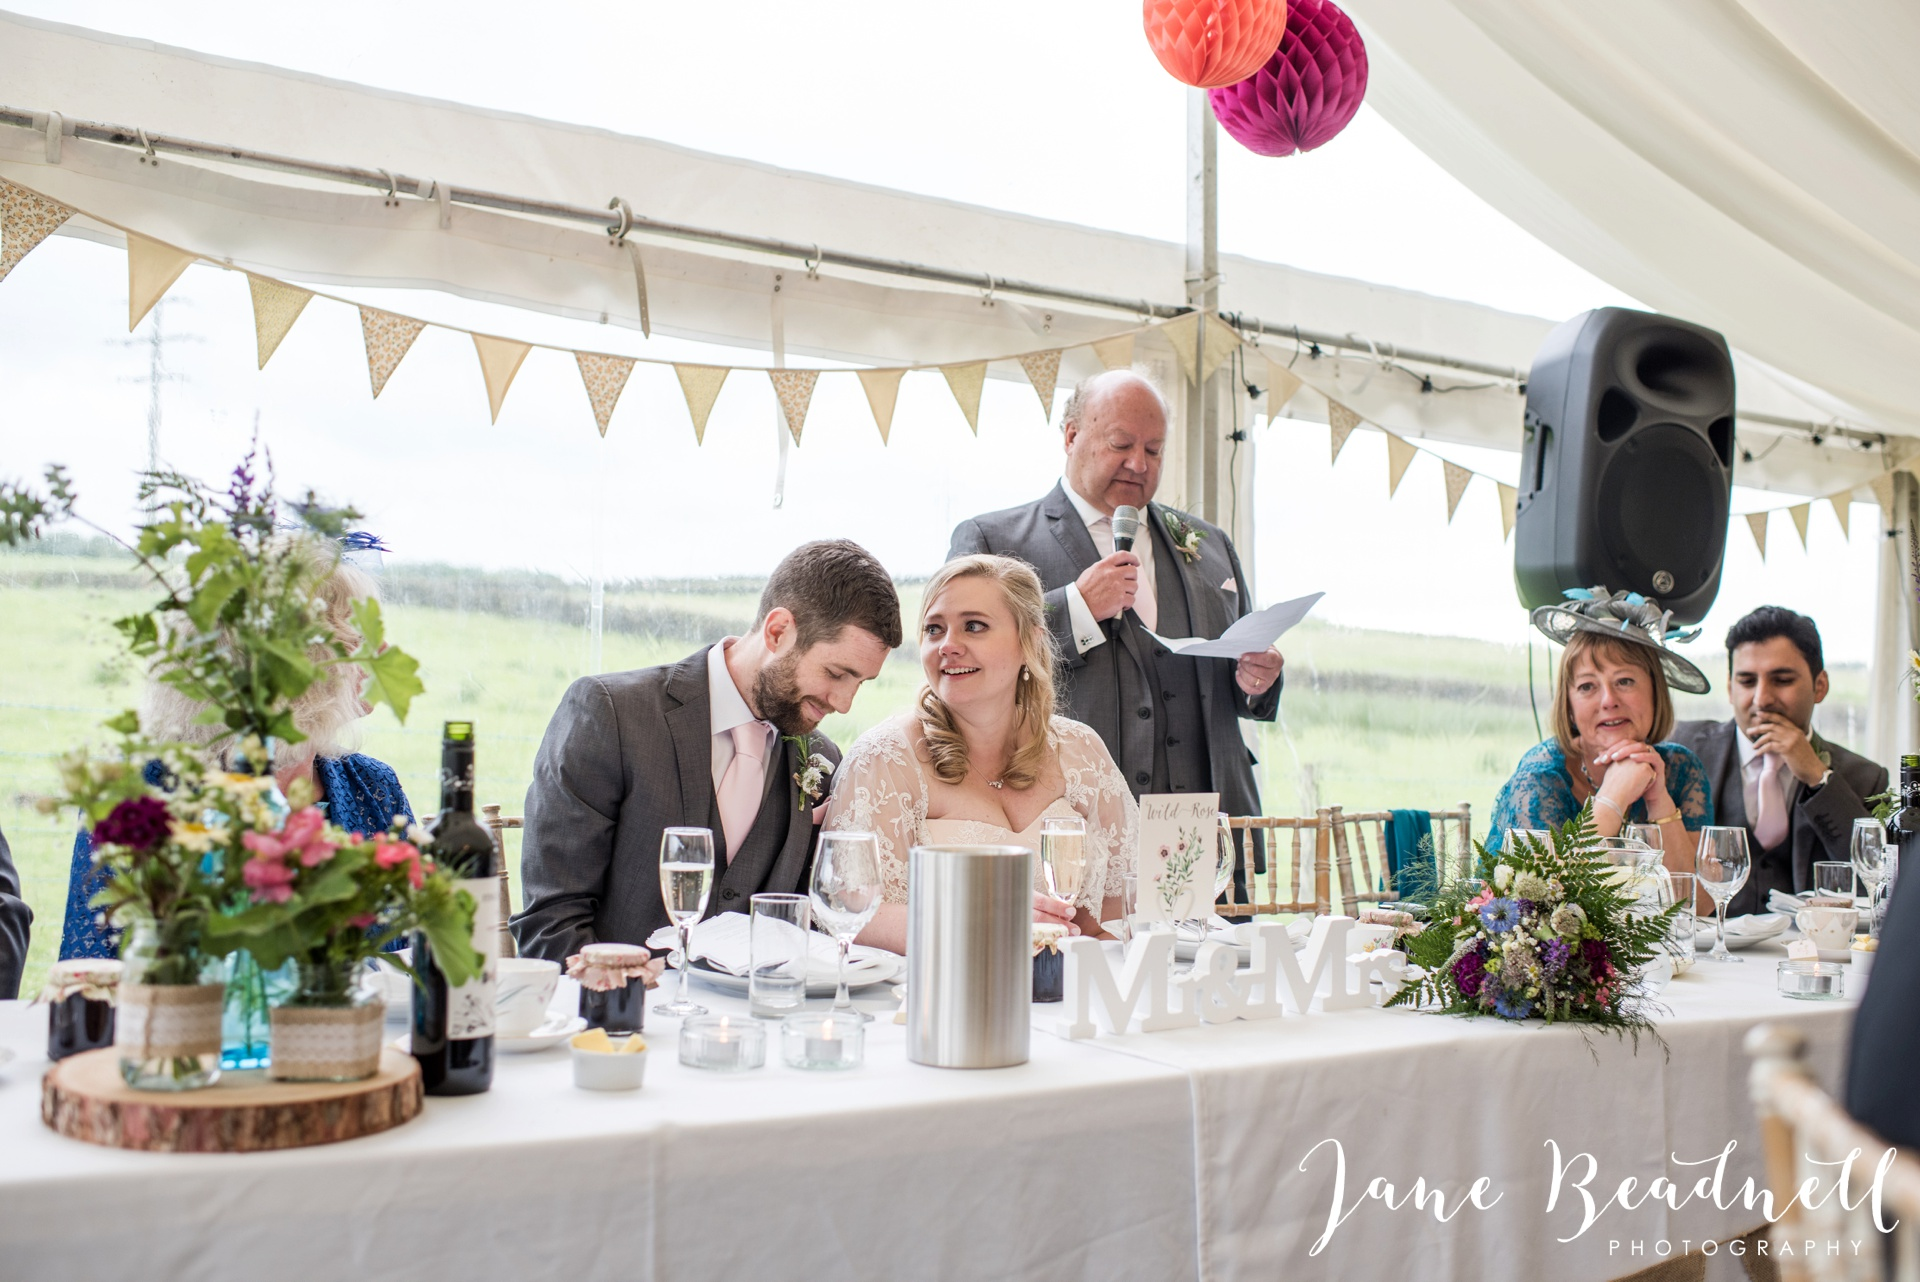 Yorkshire Wedding Photography the cheerful Chilli Barn Wedding by Jane Beadnell Photography_0165